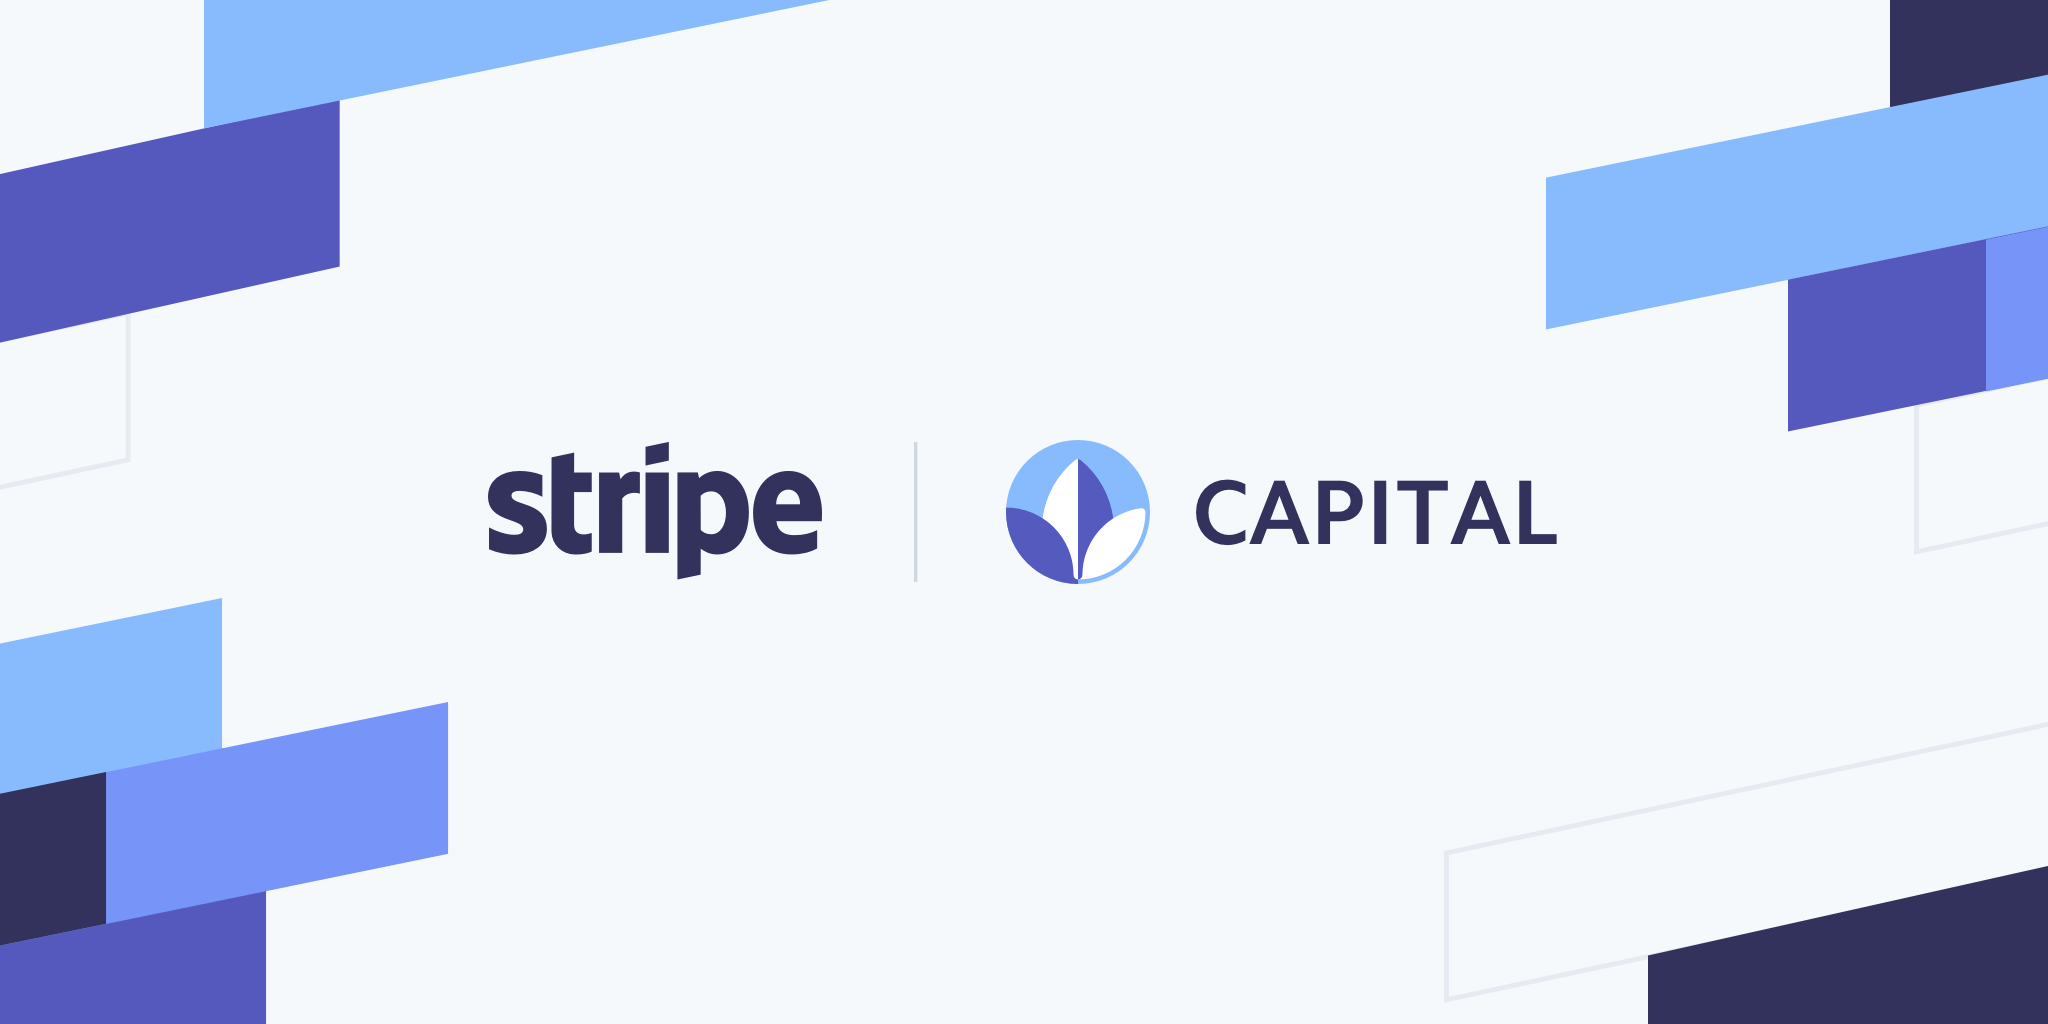 Stripe Newsroom: Stripe launches Stripe Capital to make it